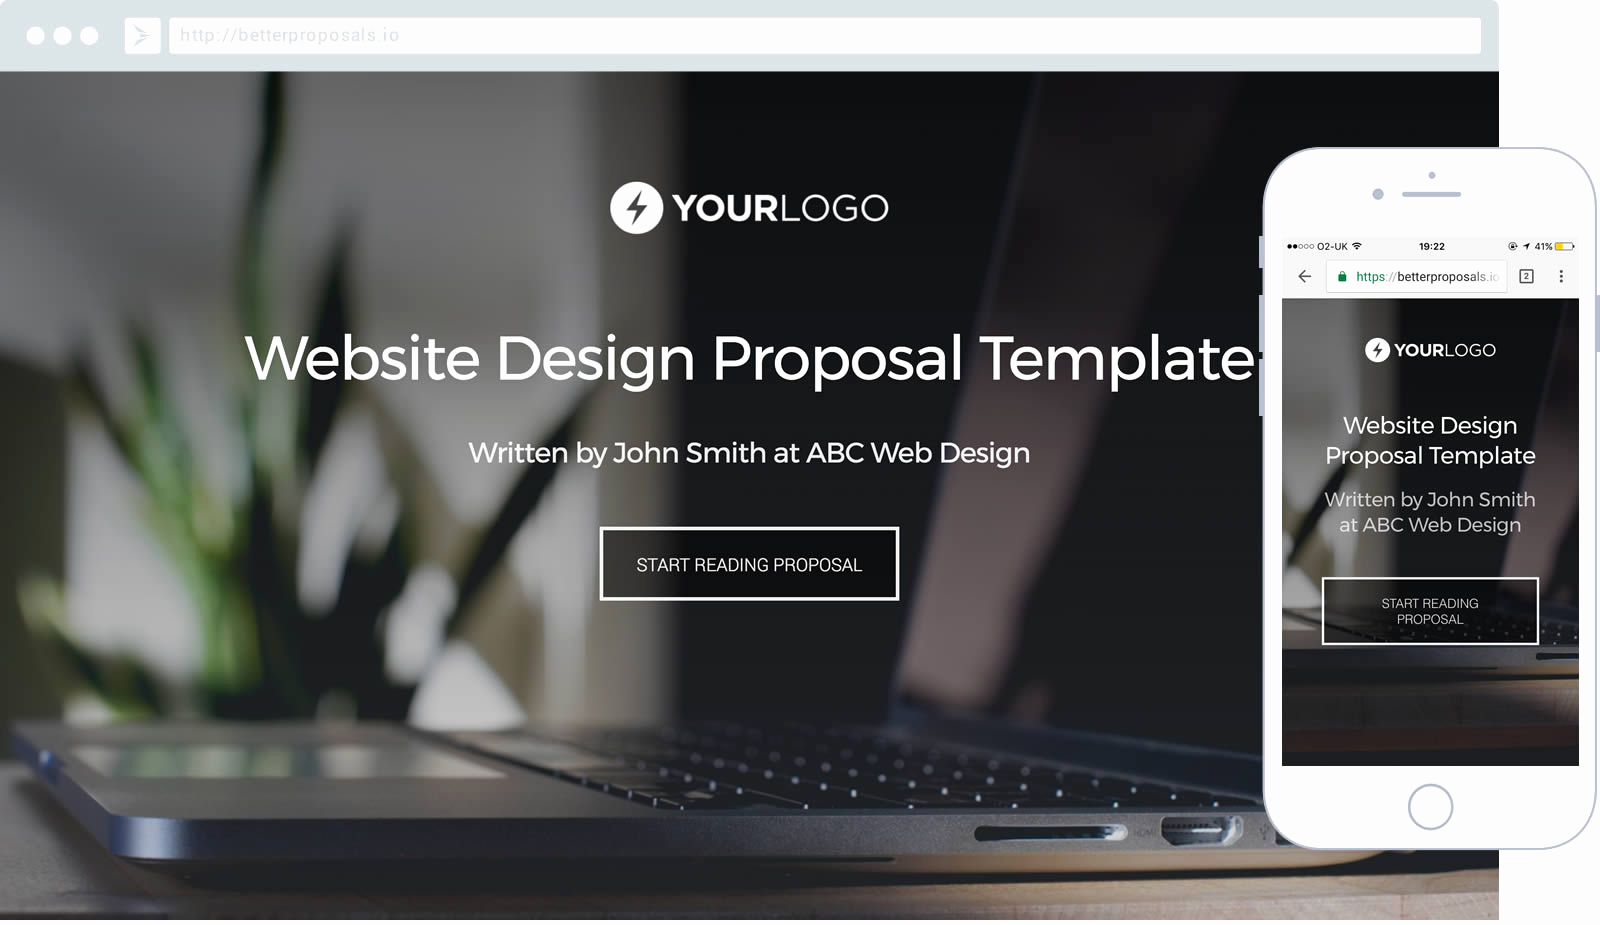 Web Design Proposal Template Fresh Free Website Design Proposal Template Better Proposals